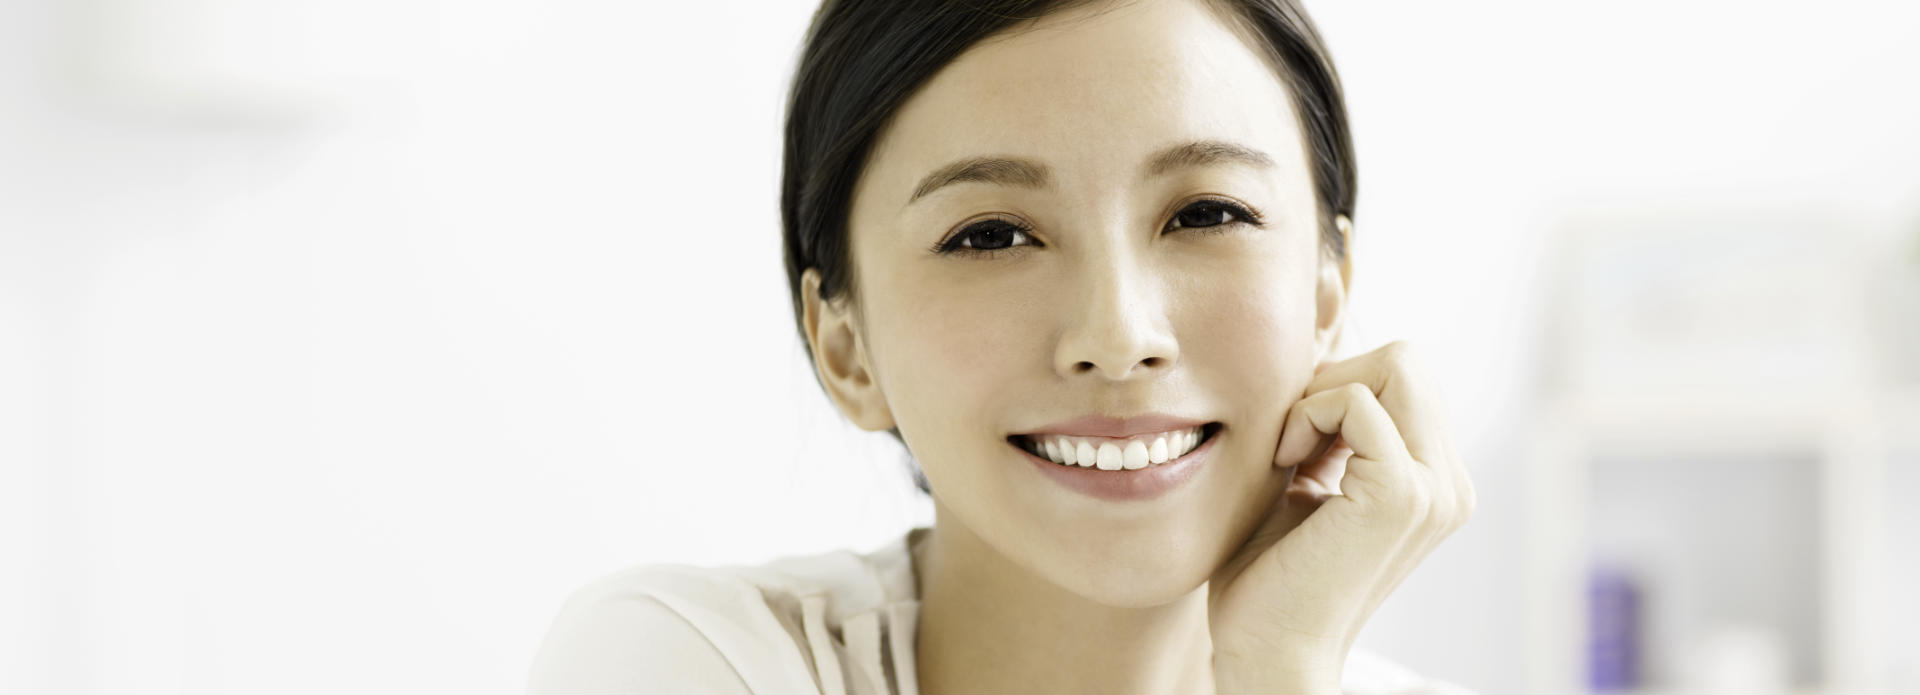 cheerful woman with perfect skin and beautiful smile